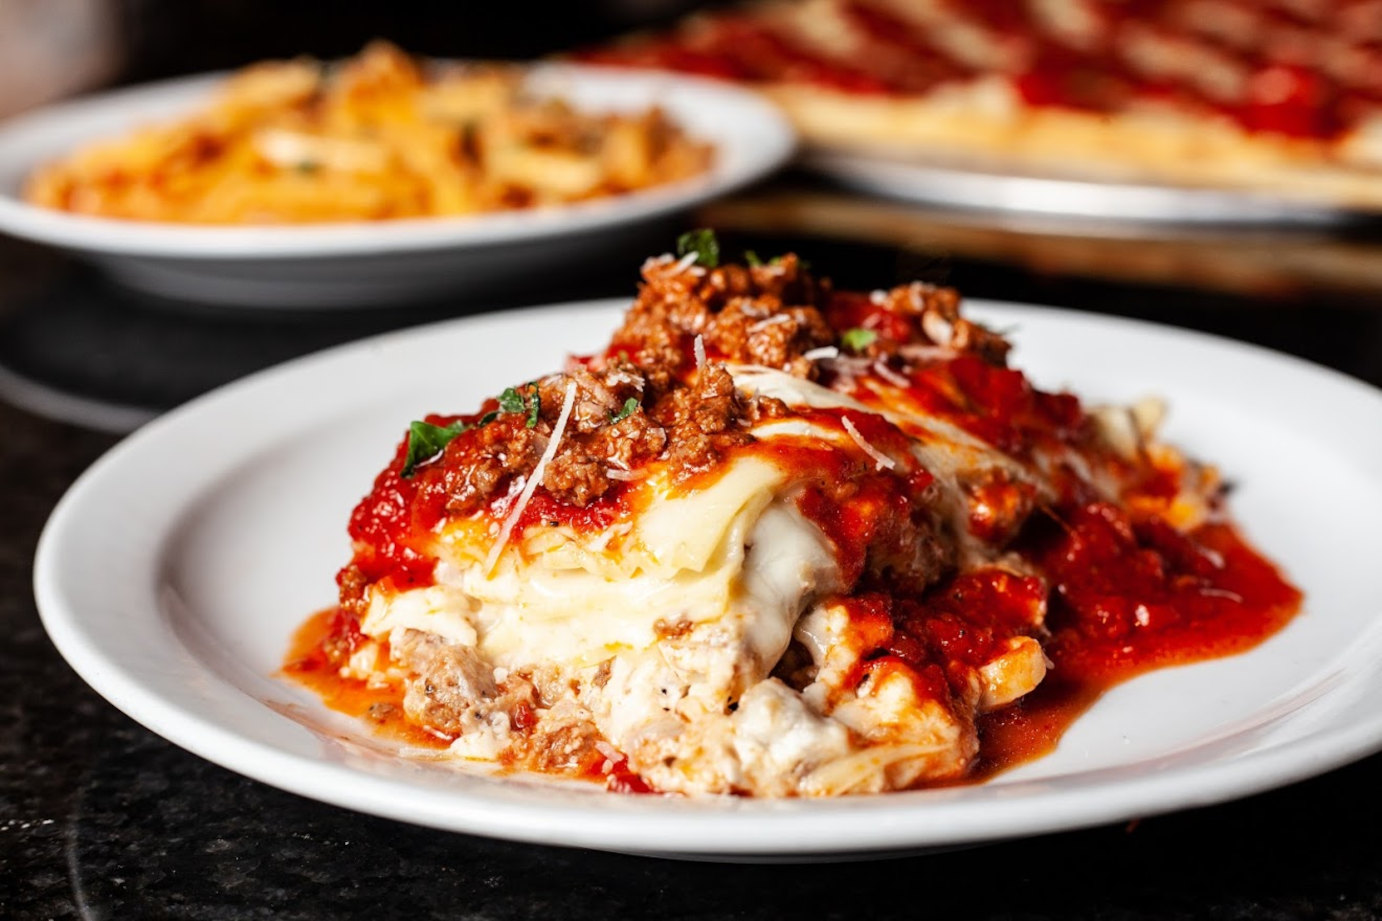 Pasta with melted cheese and tomato sauce